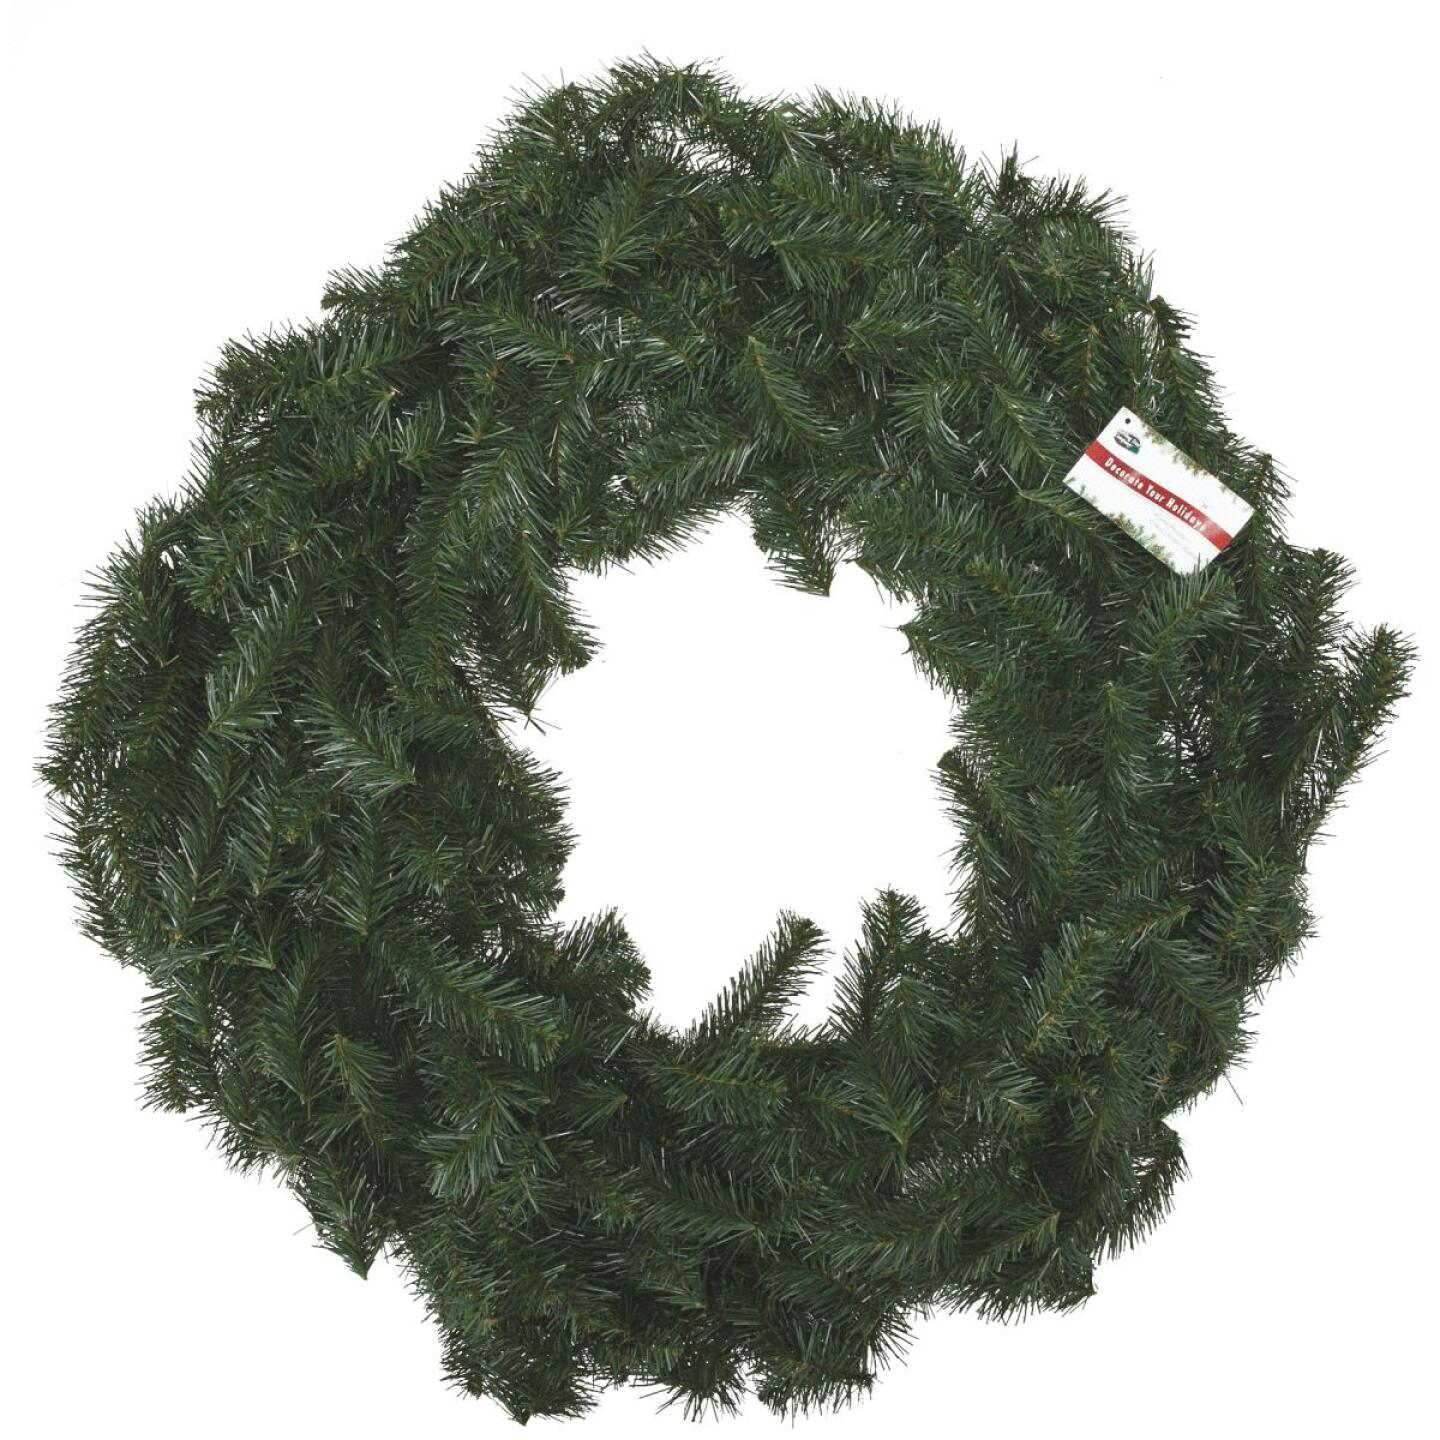 Gerson 36 In. Canadian Pine Artificial Wreath Image 2